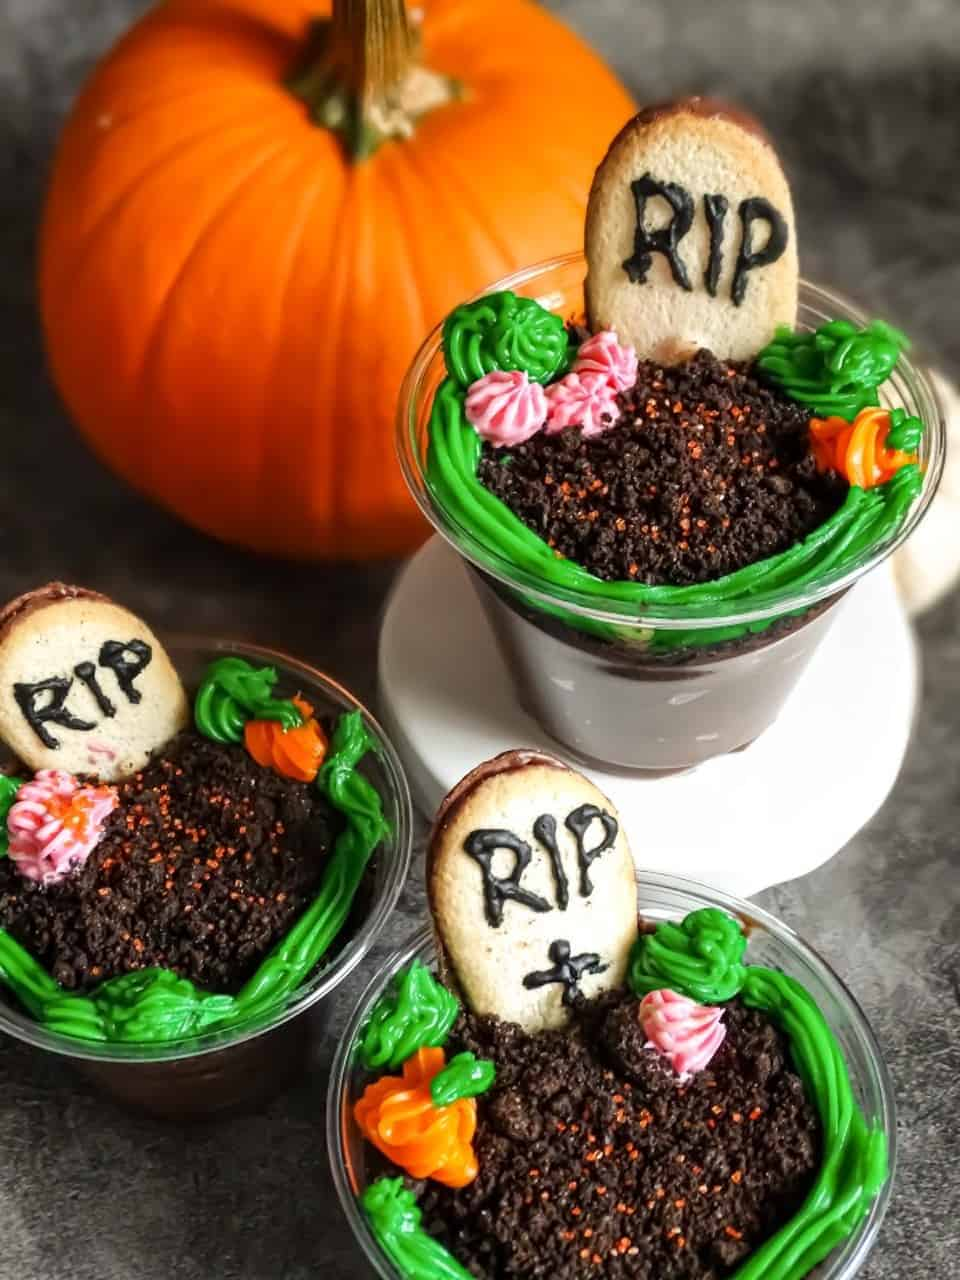 Halloween graveyard treats: chocolate pudding cups decorated with cookies and icing